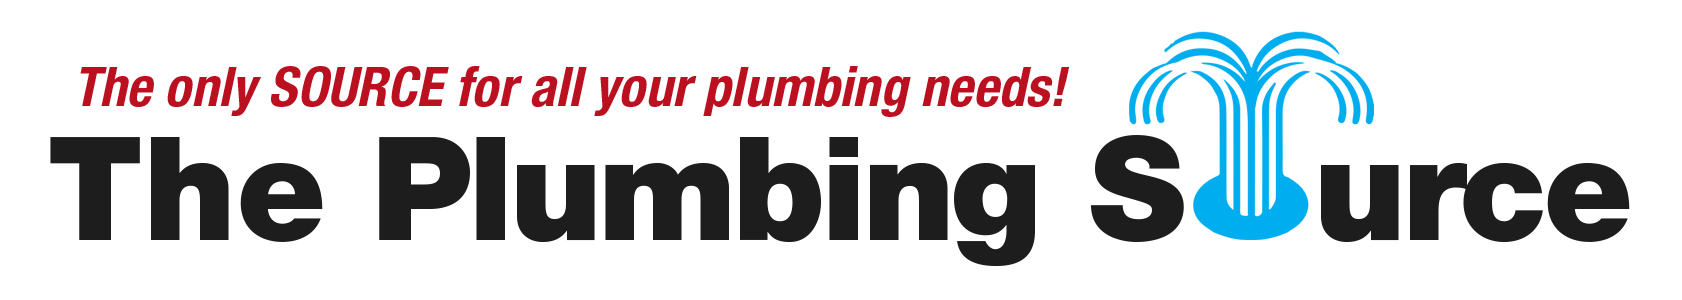 The Plumbing Source